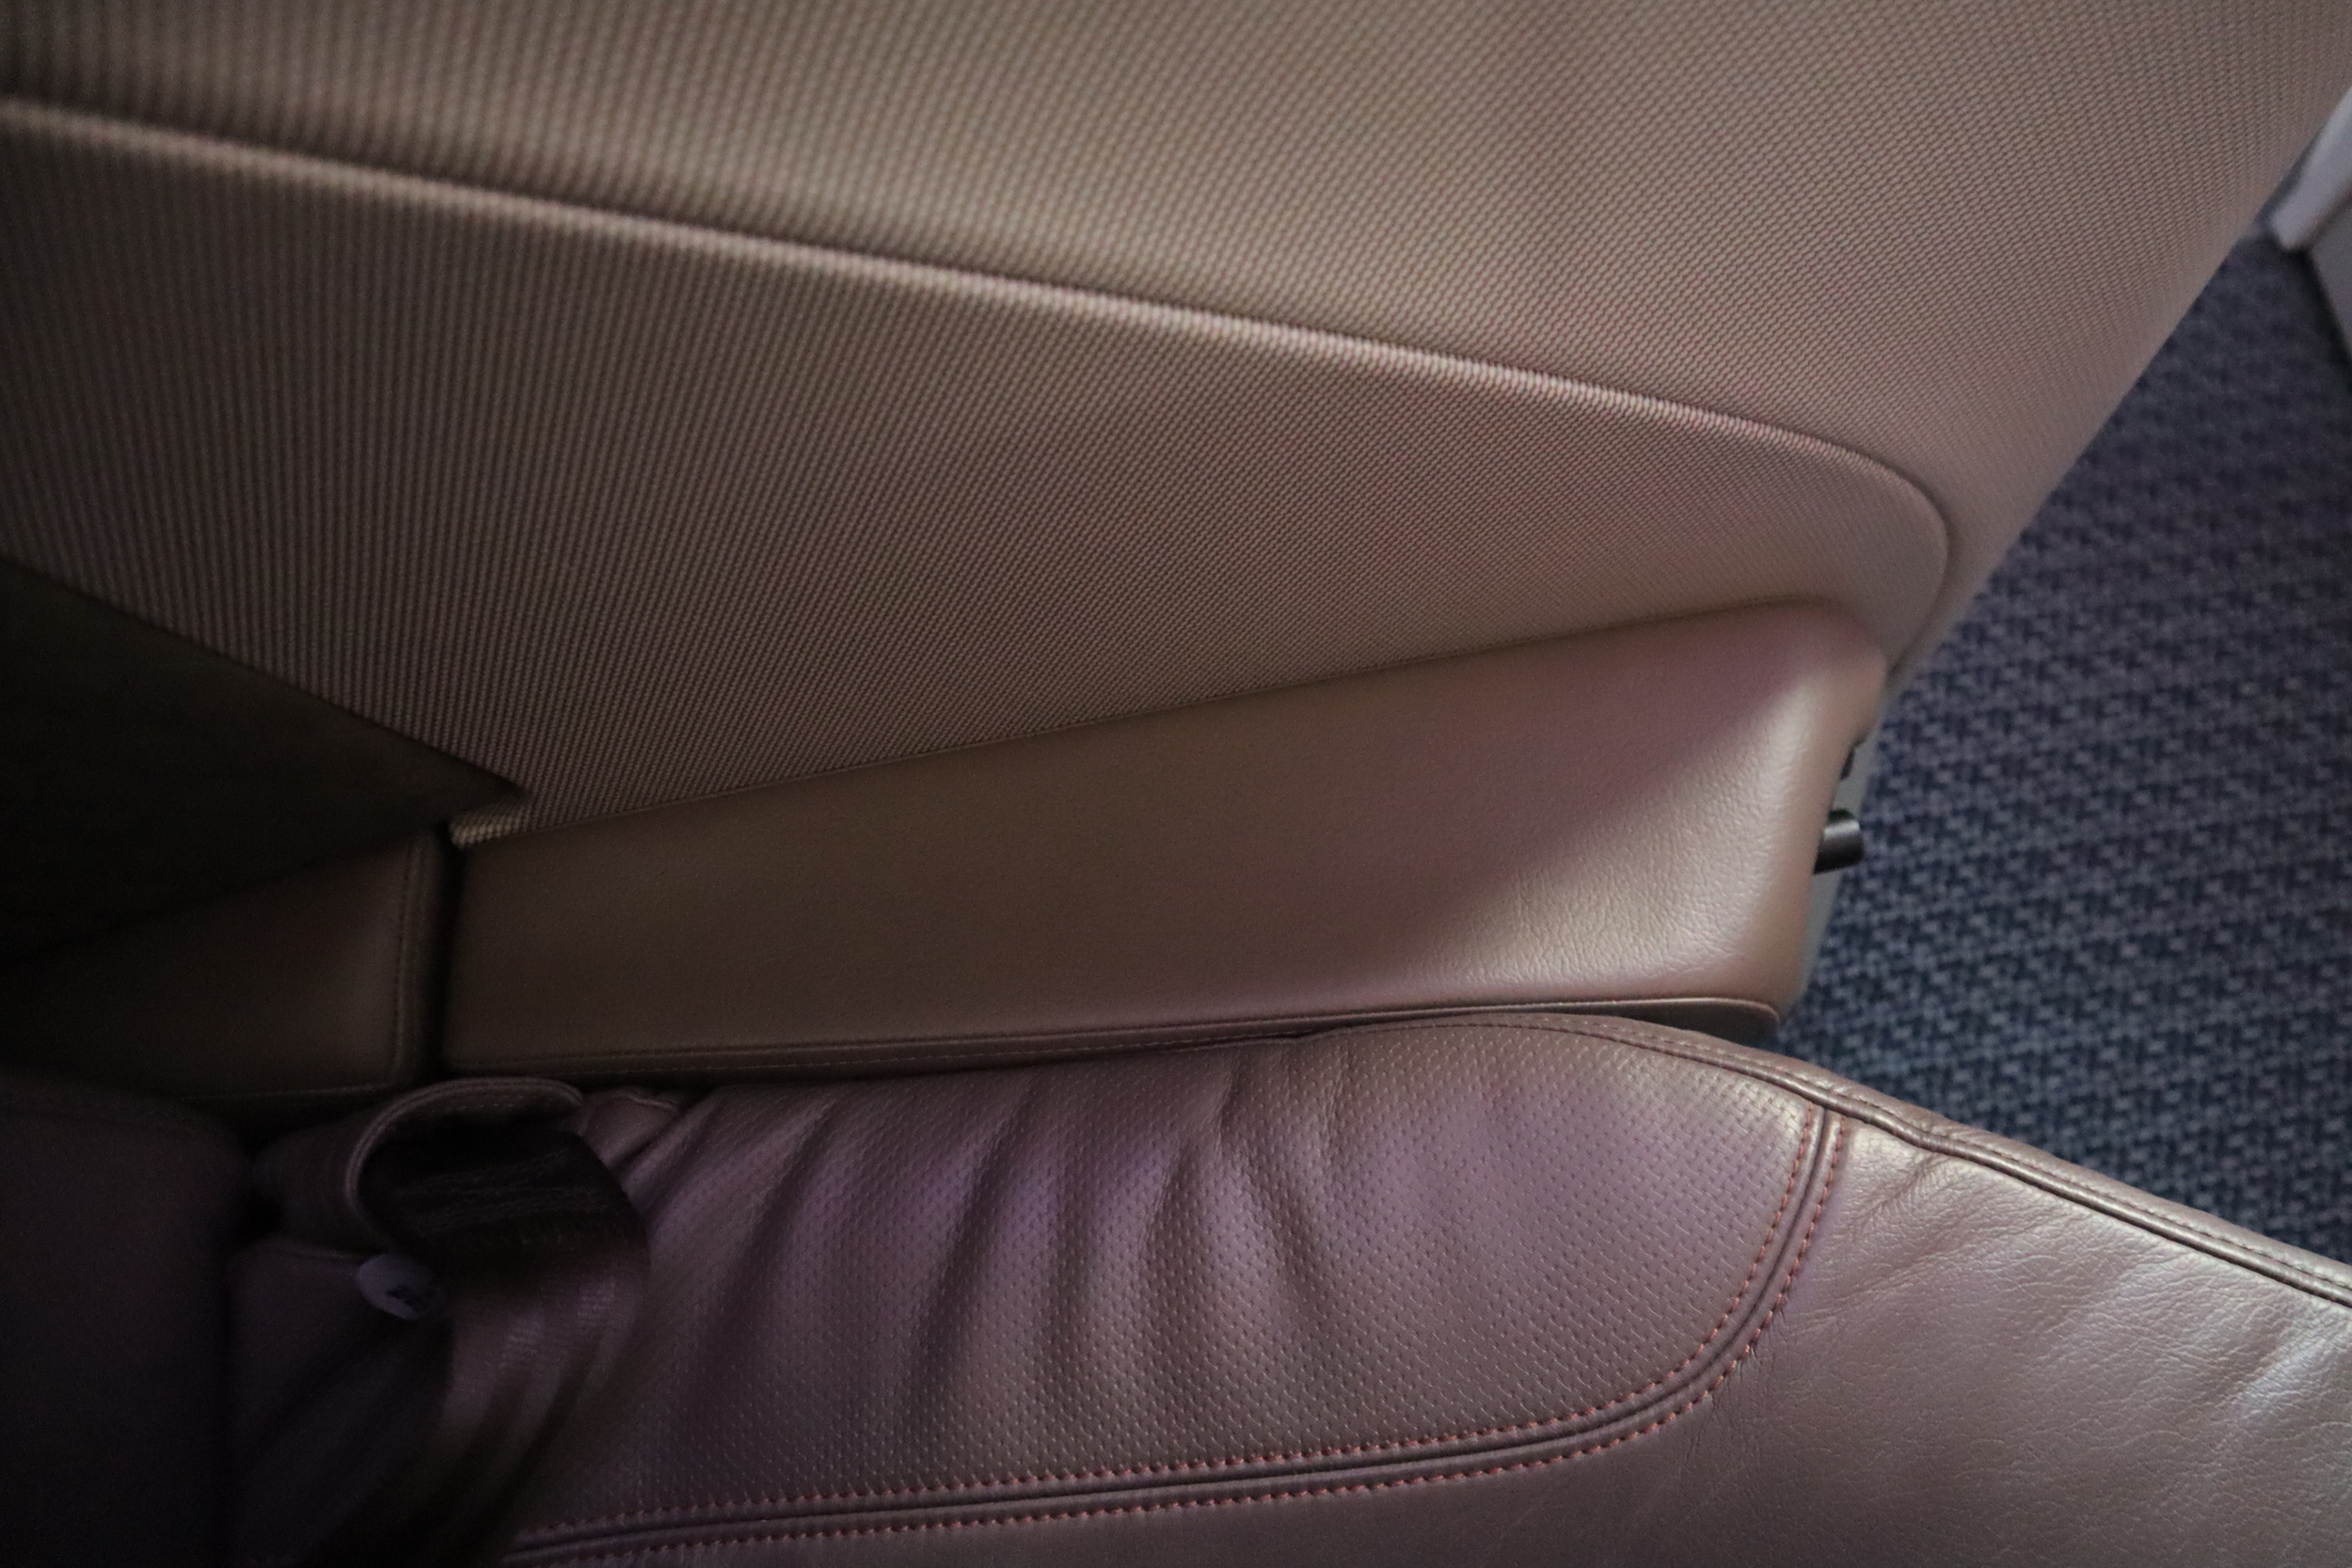 Singapore Airlines 787-10 business class – Armrest